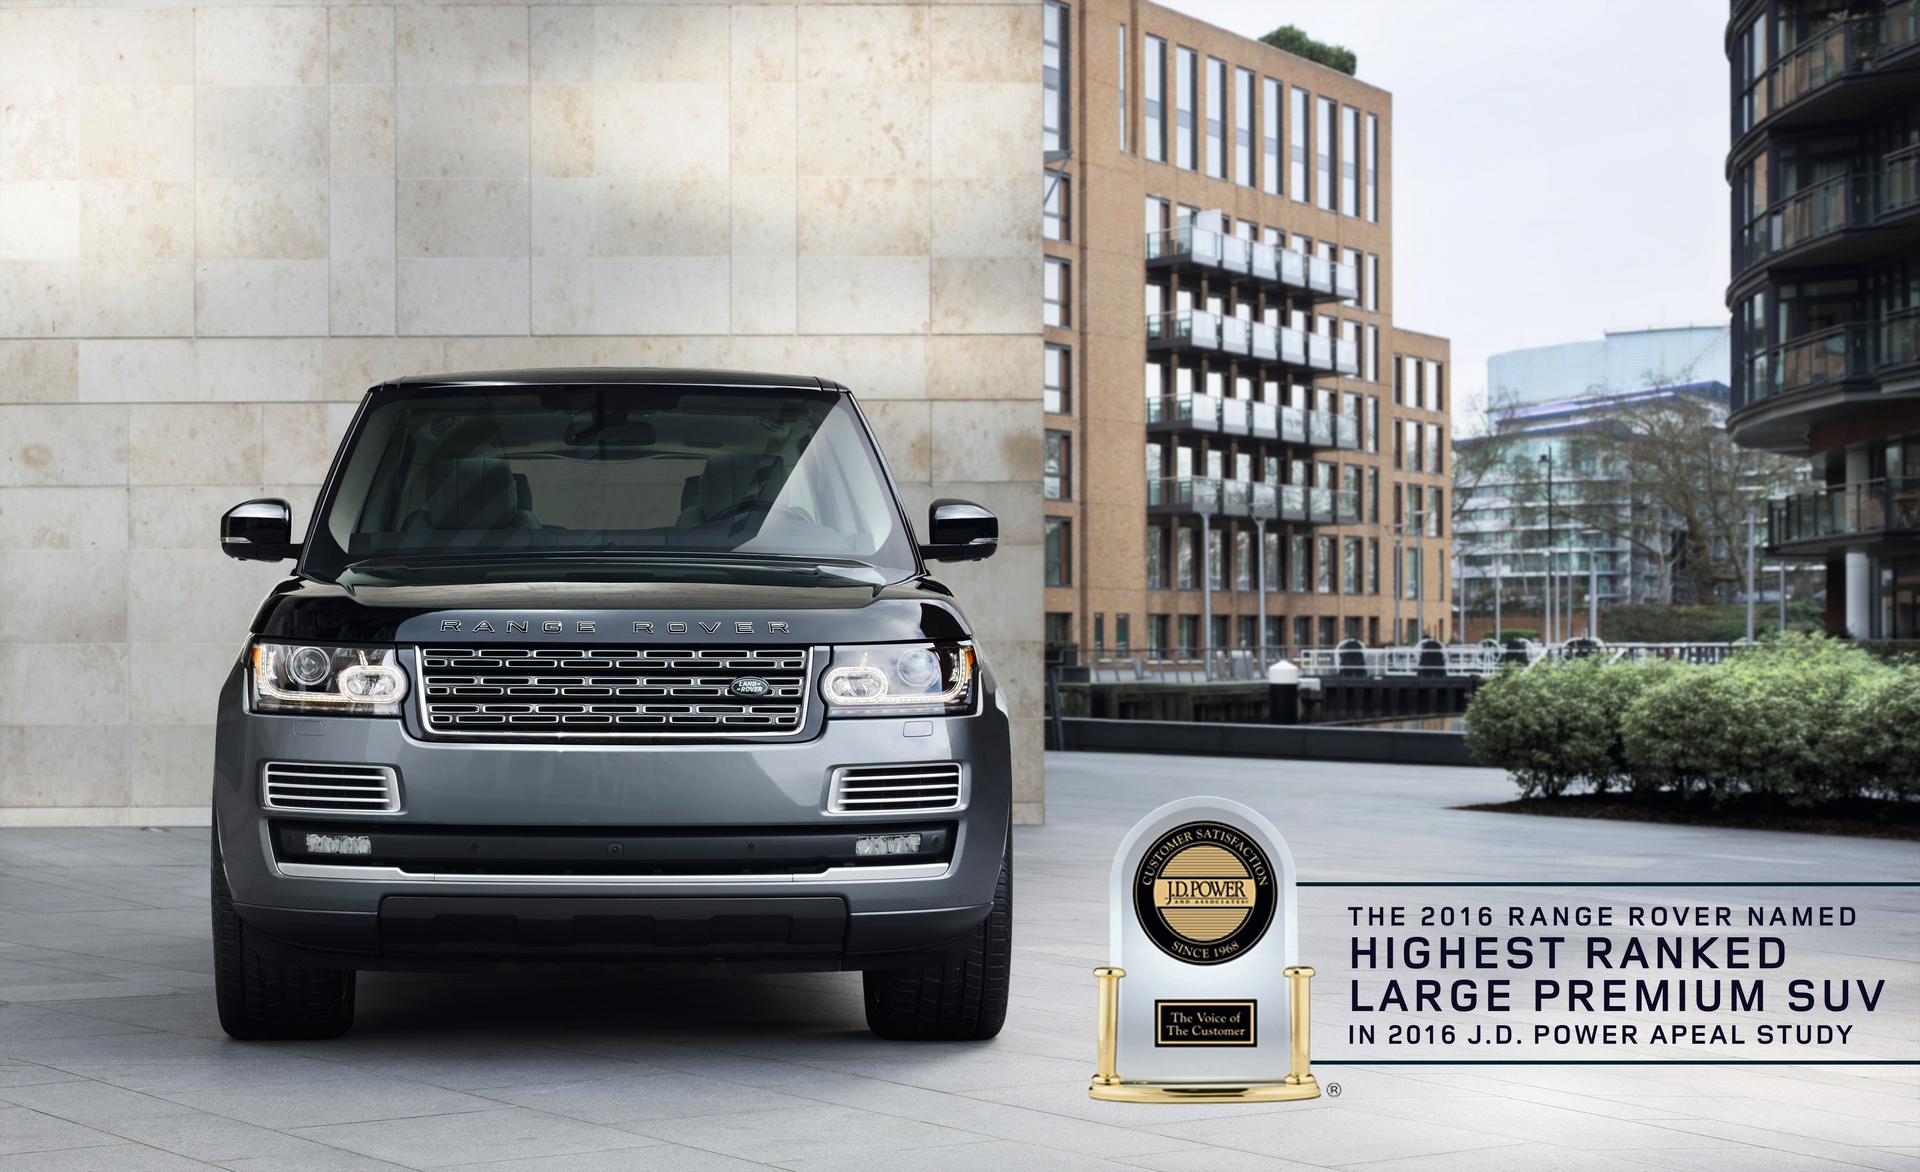 Land Rover Range Rover Named Highest Ranked Large Premium SUV © Tata Group